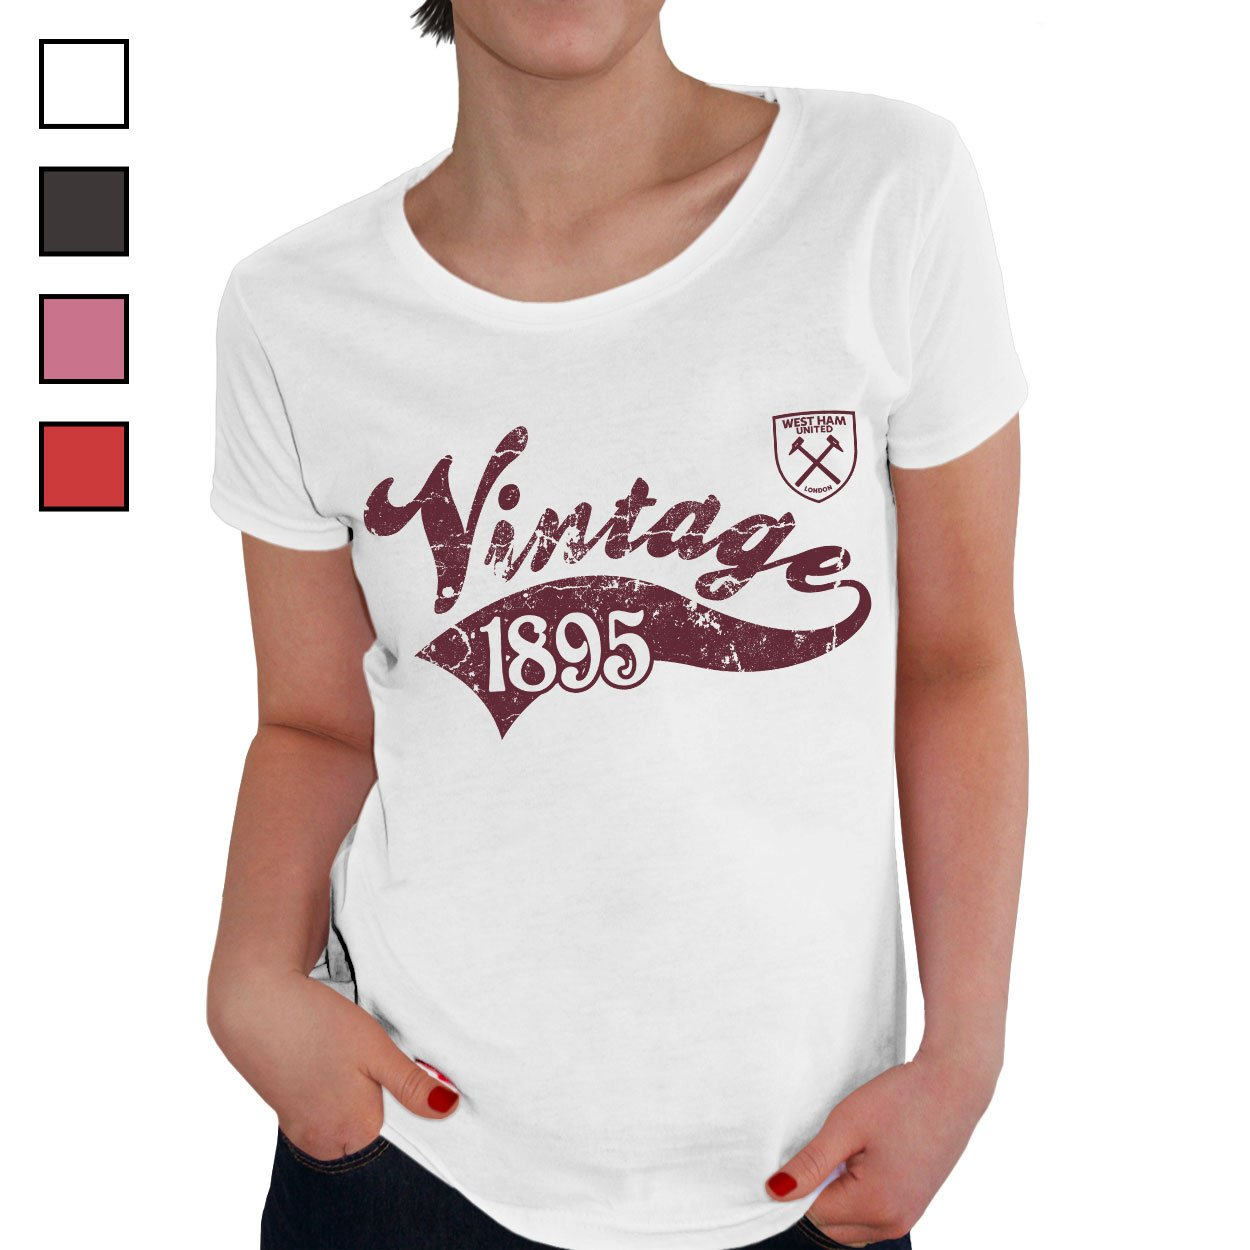 West Ham United FC Ladies Vintage T-Shirt